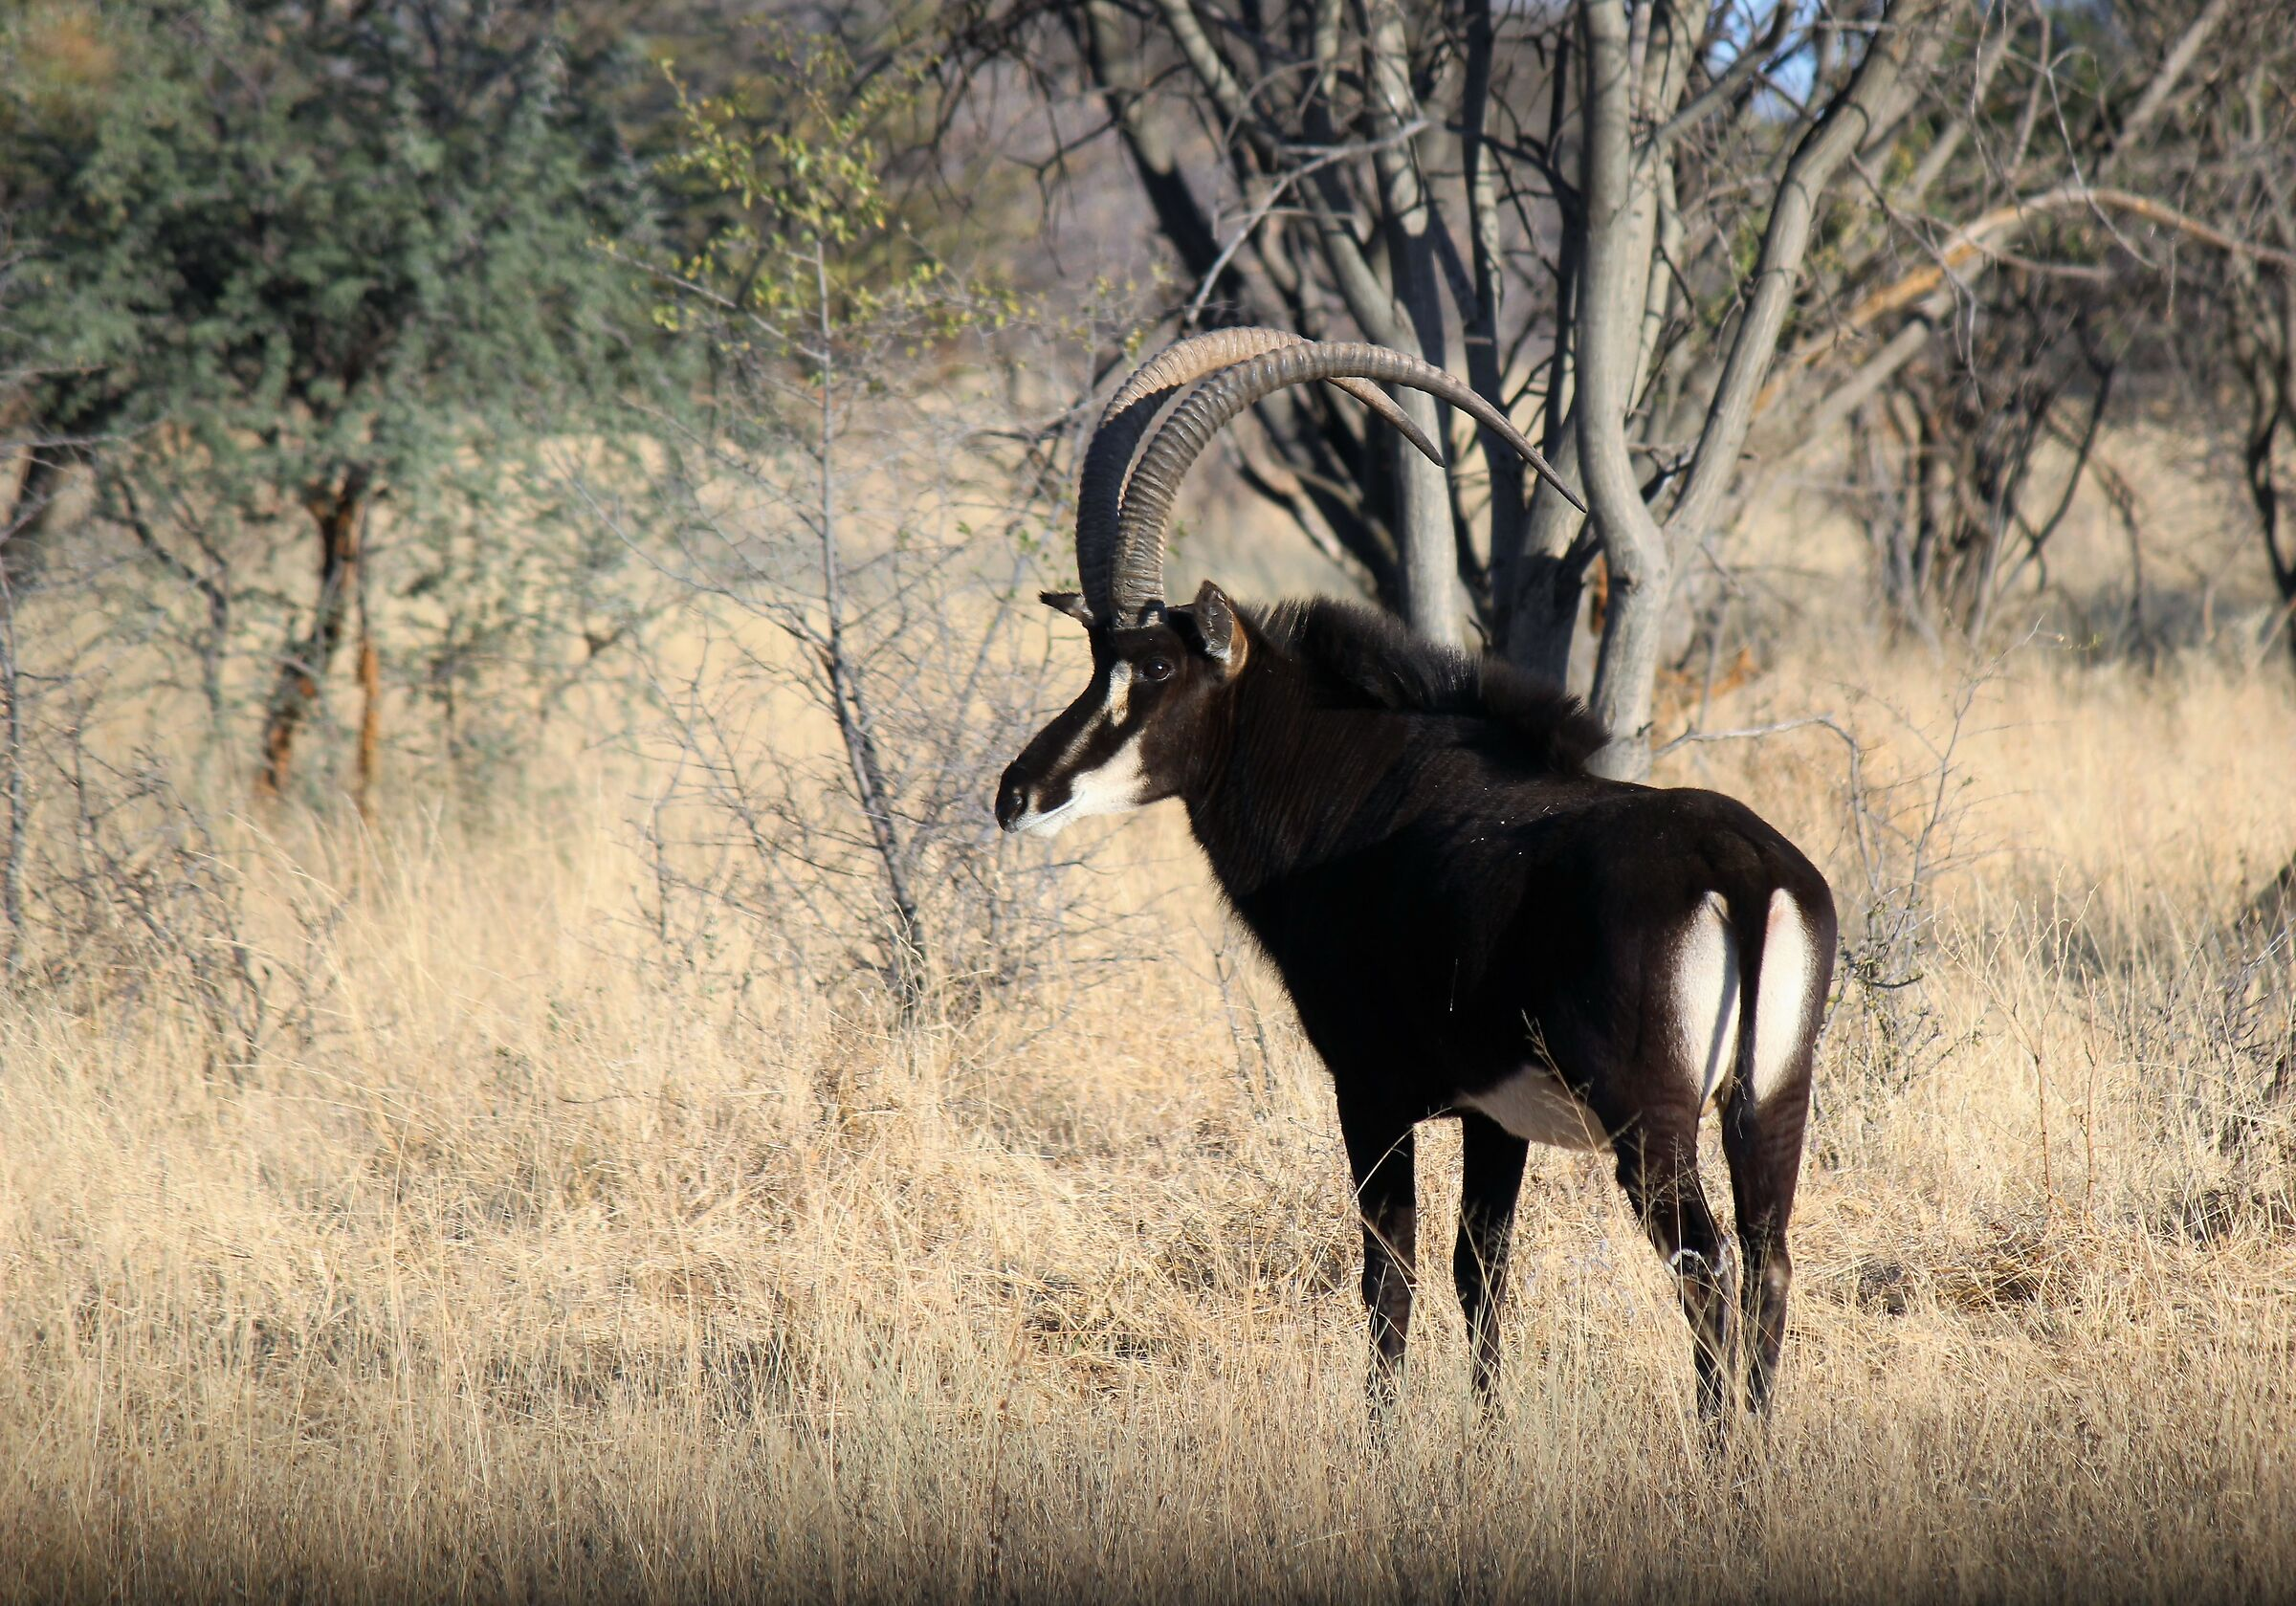 Out of the usual safari: Black Antelope ...